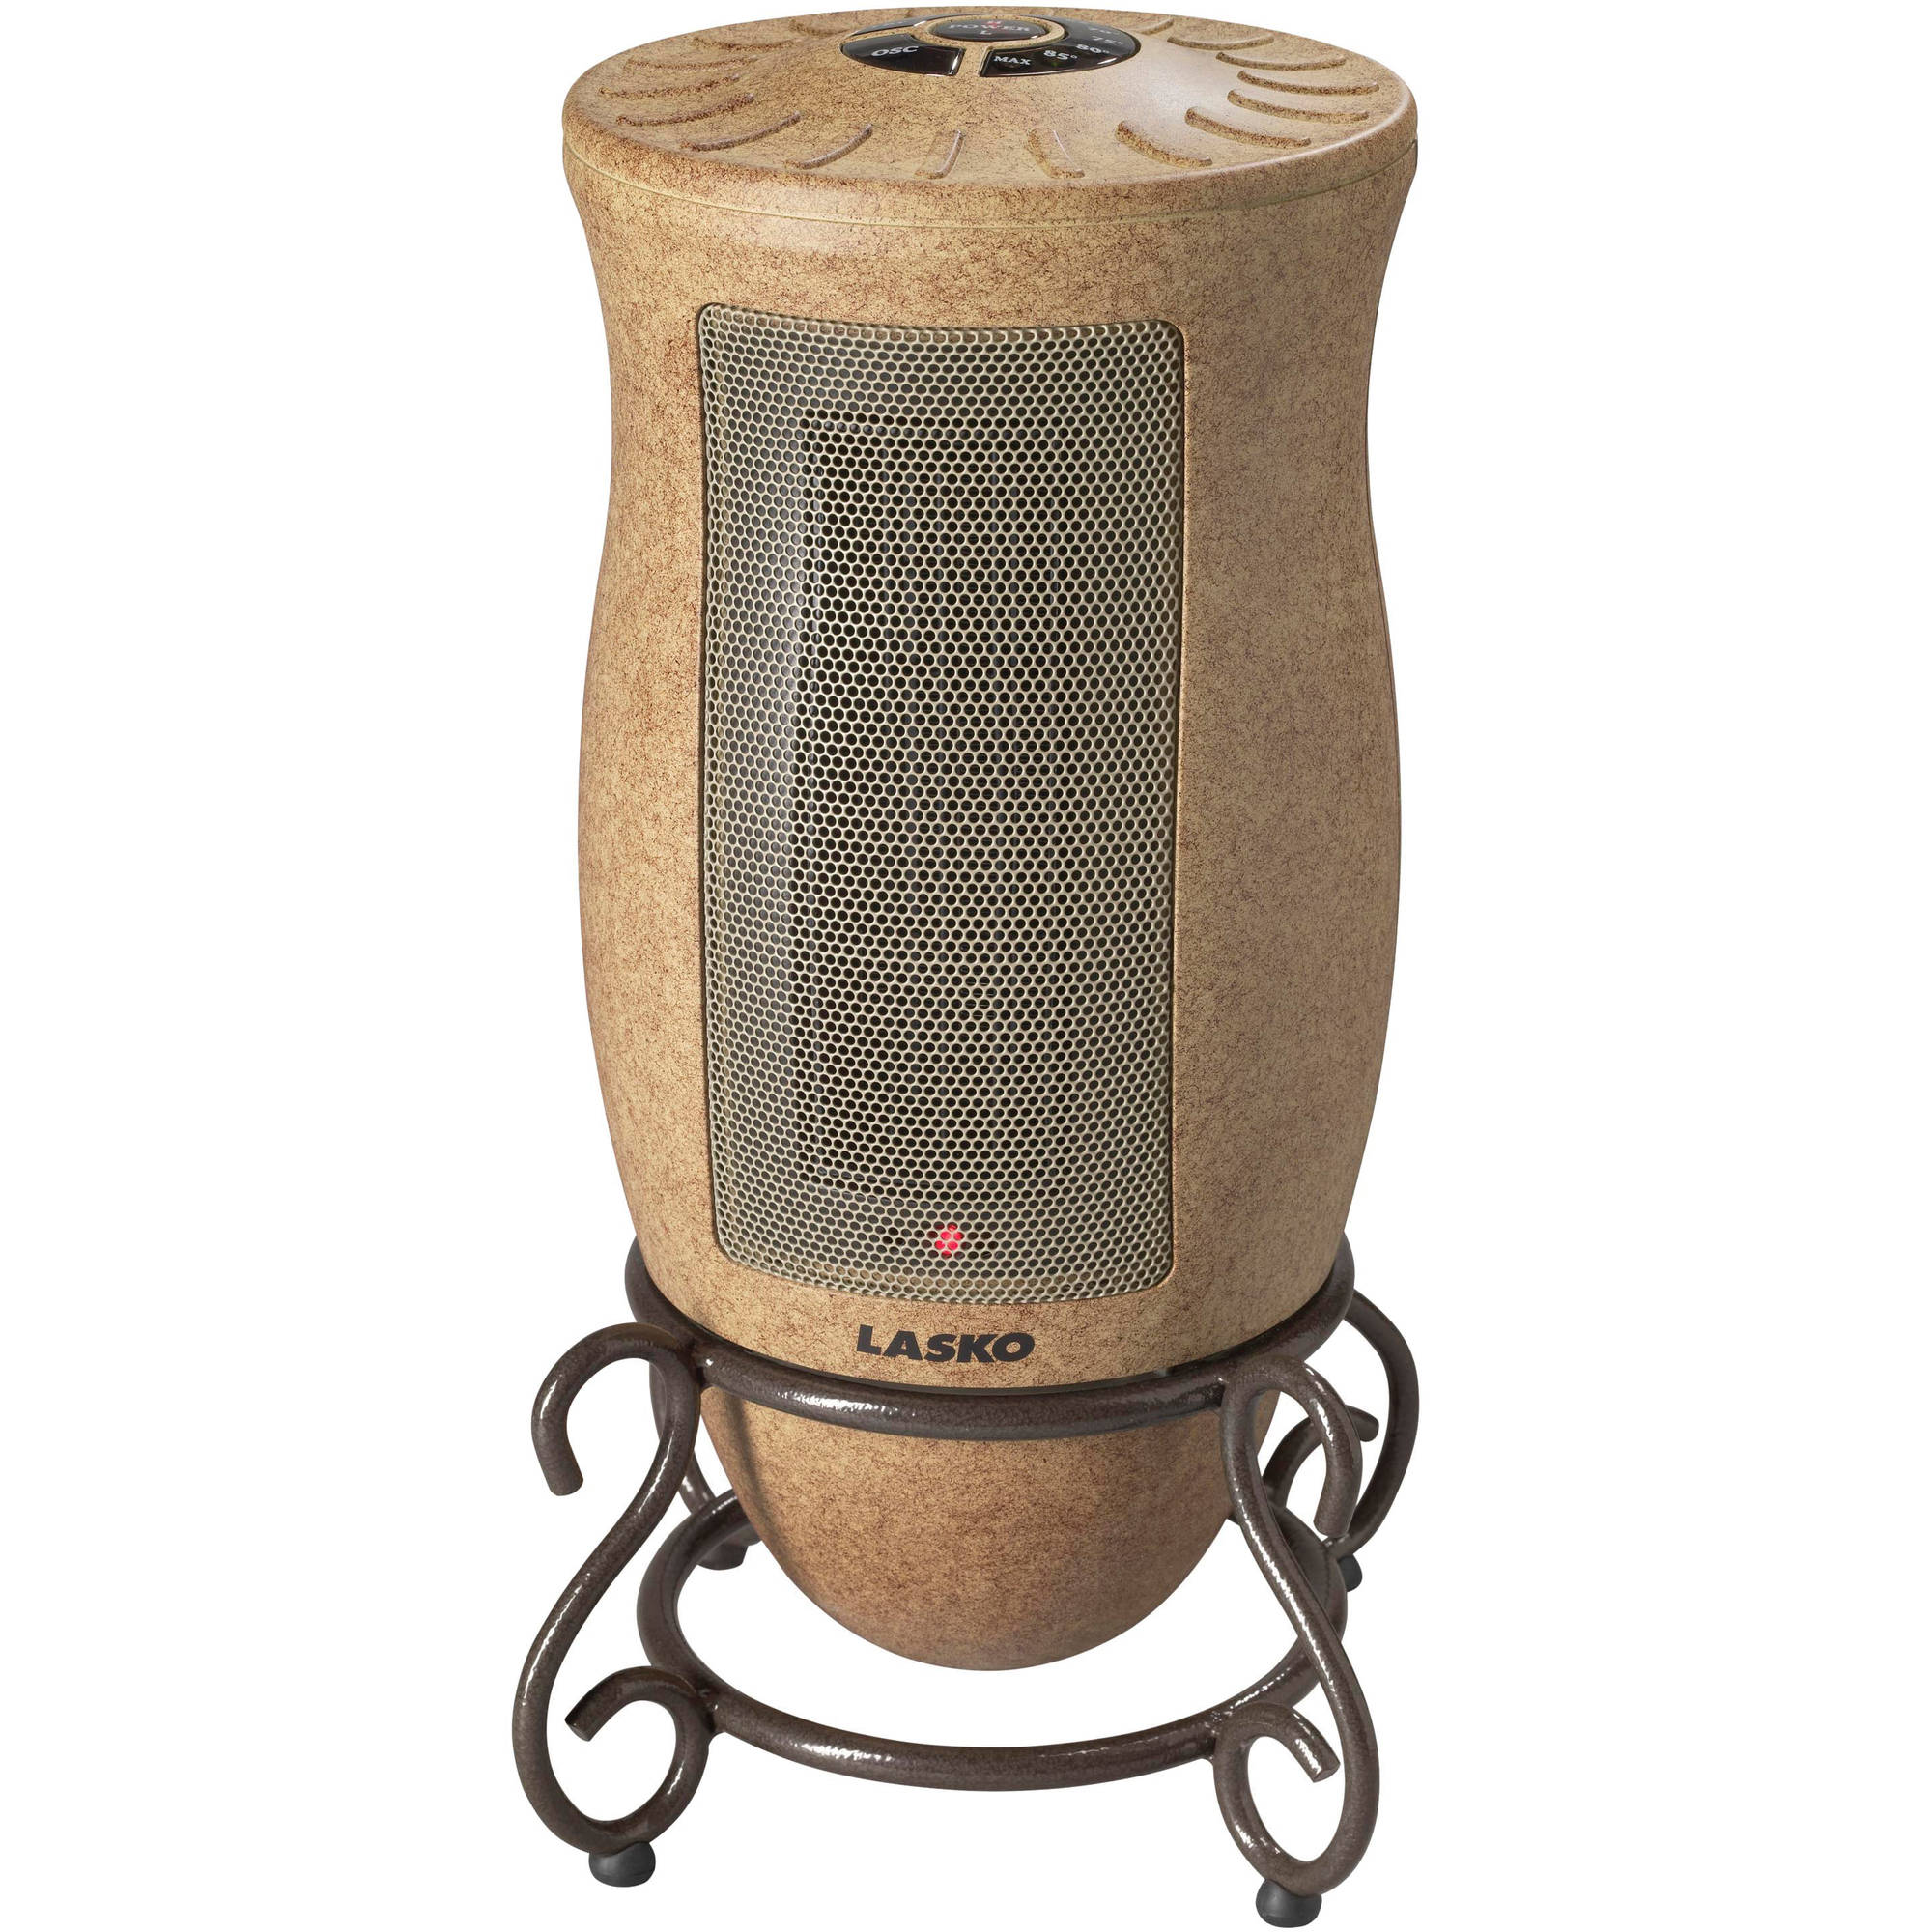 Lasko Designer Series Oscillating Ceramic Electric Portable Space Heater